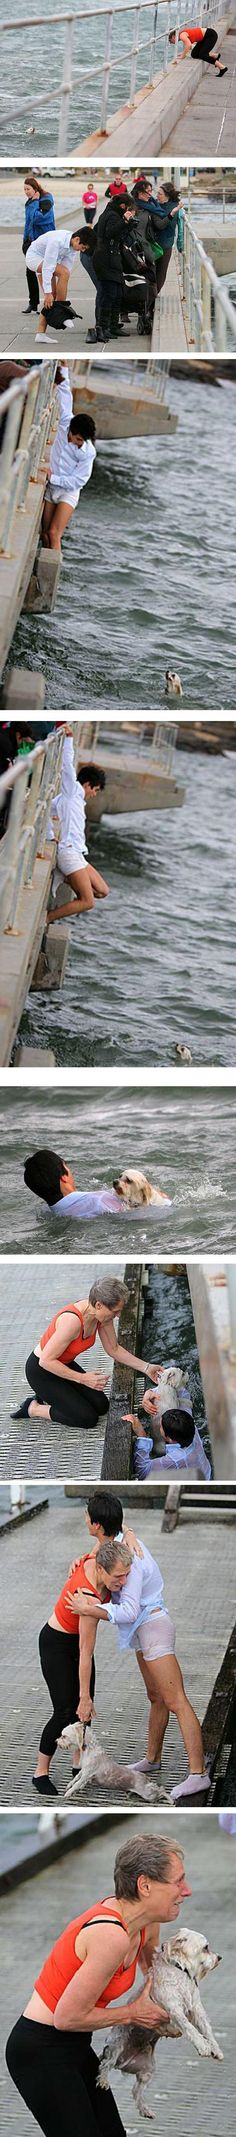 Faith in humanity: Hund retten - Win Bild